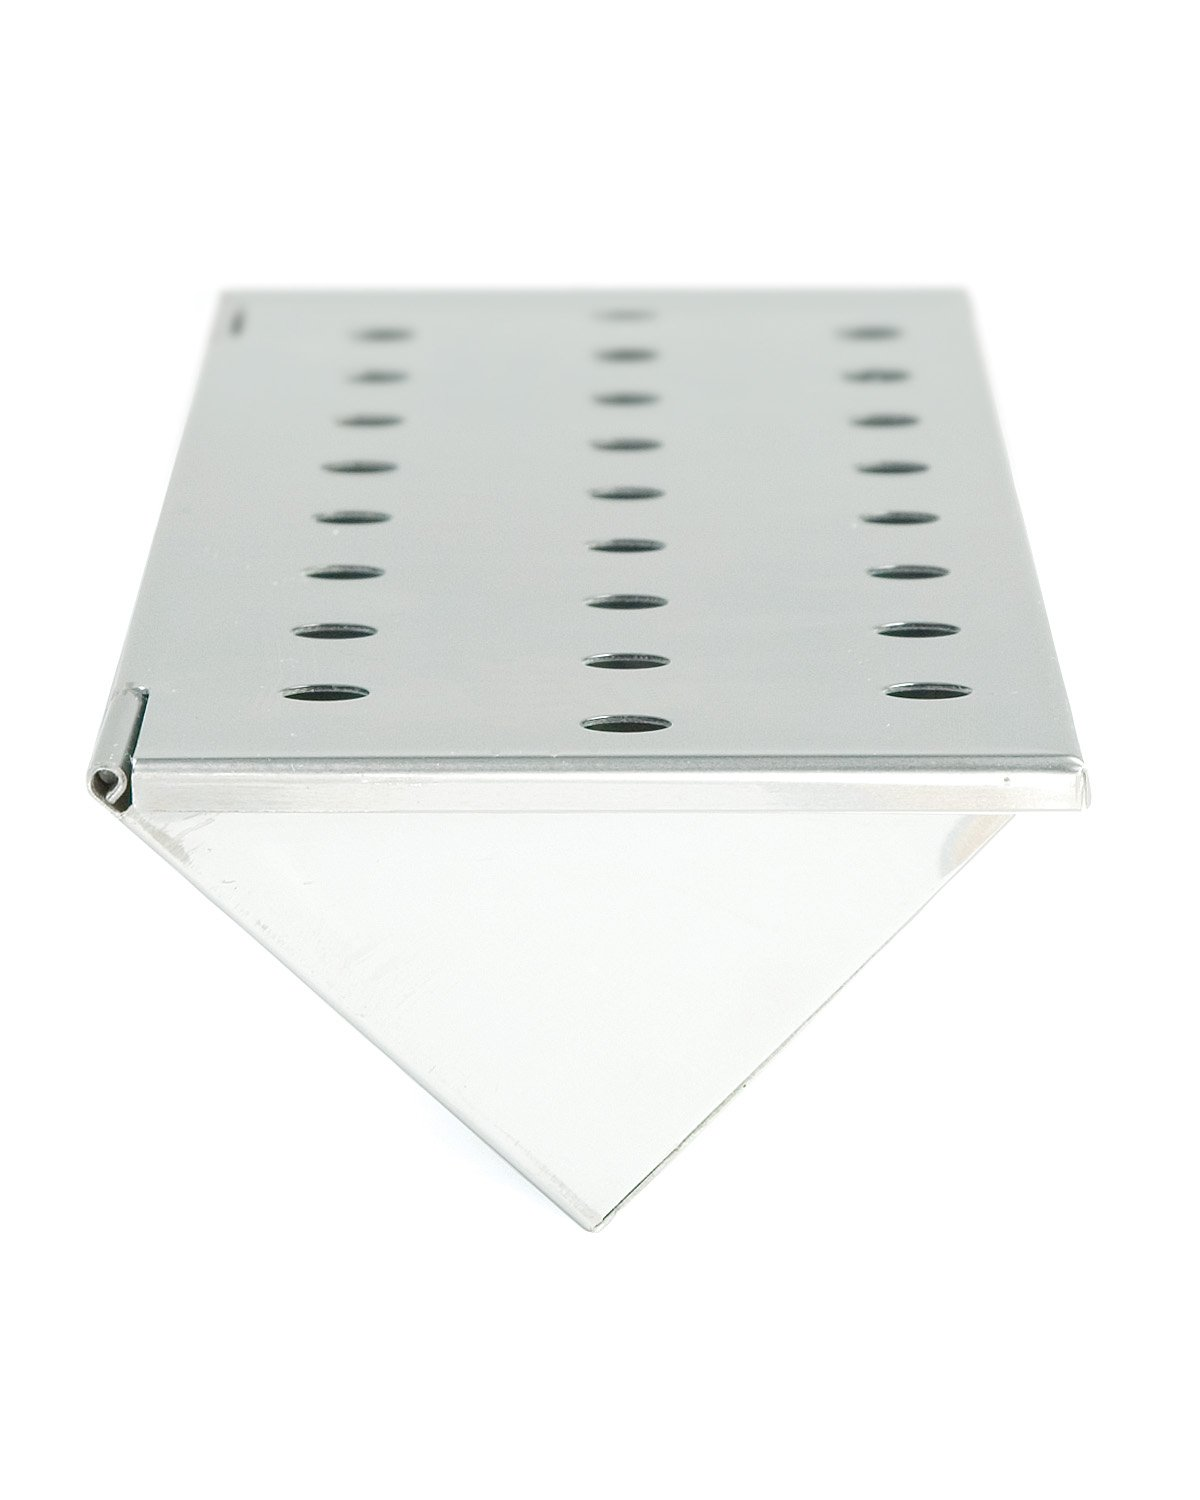 Charcoal Companion Stainless Steel V-Shape Smoker Box For Gas Grill Wood Chips (Long) - CC4066 by Charcoal Companion